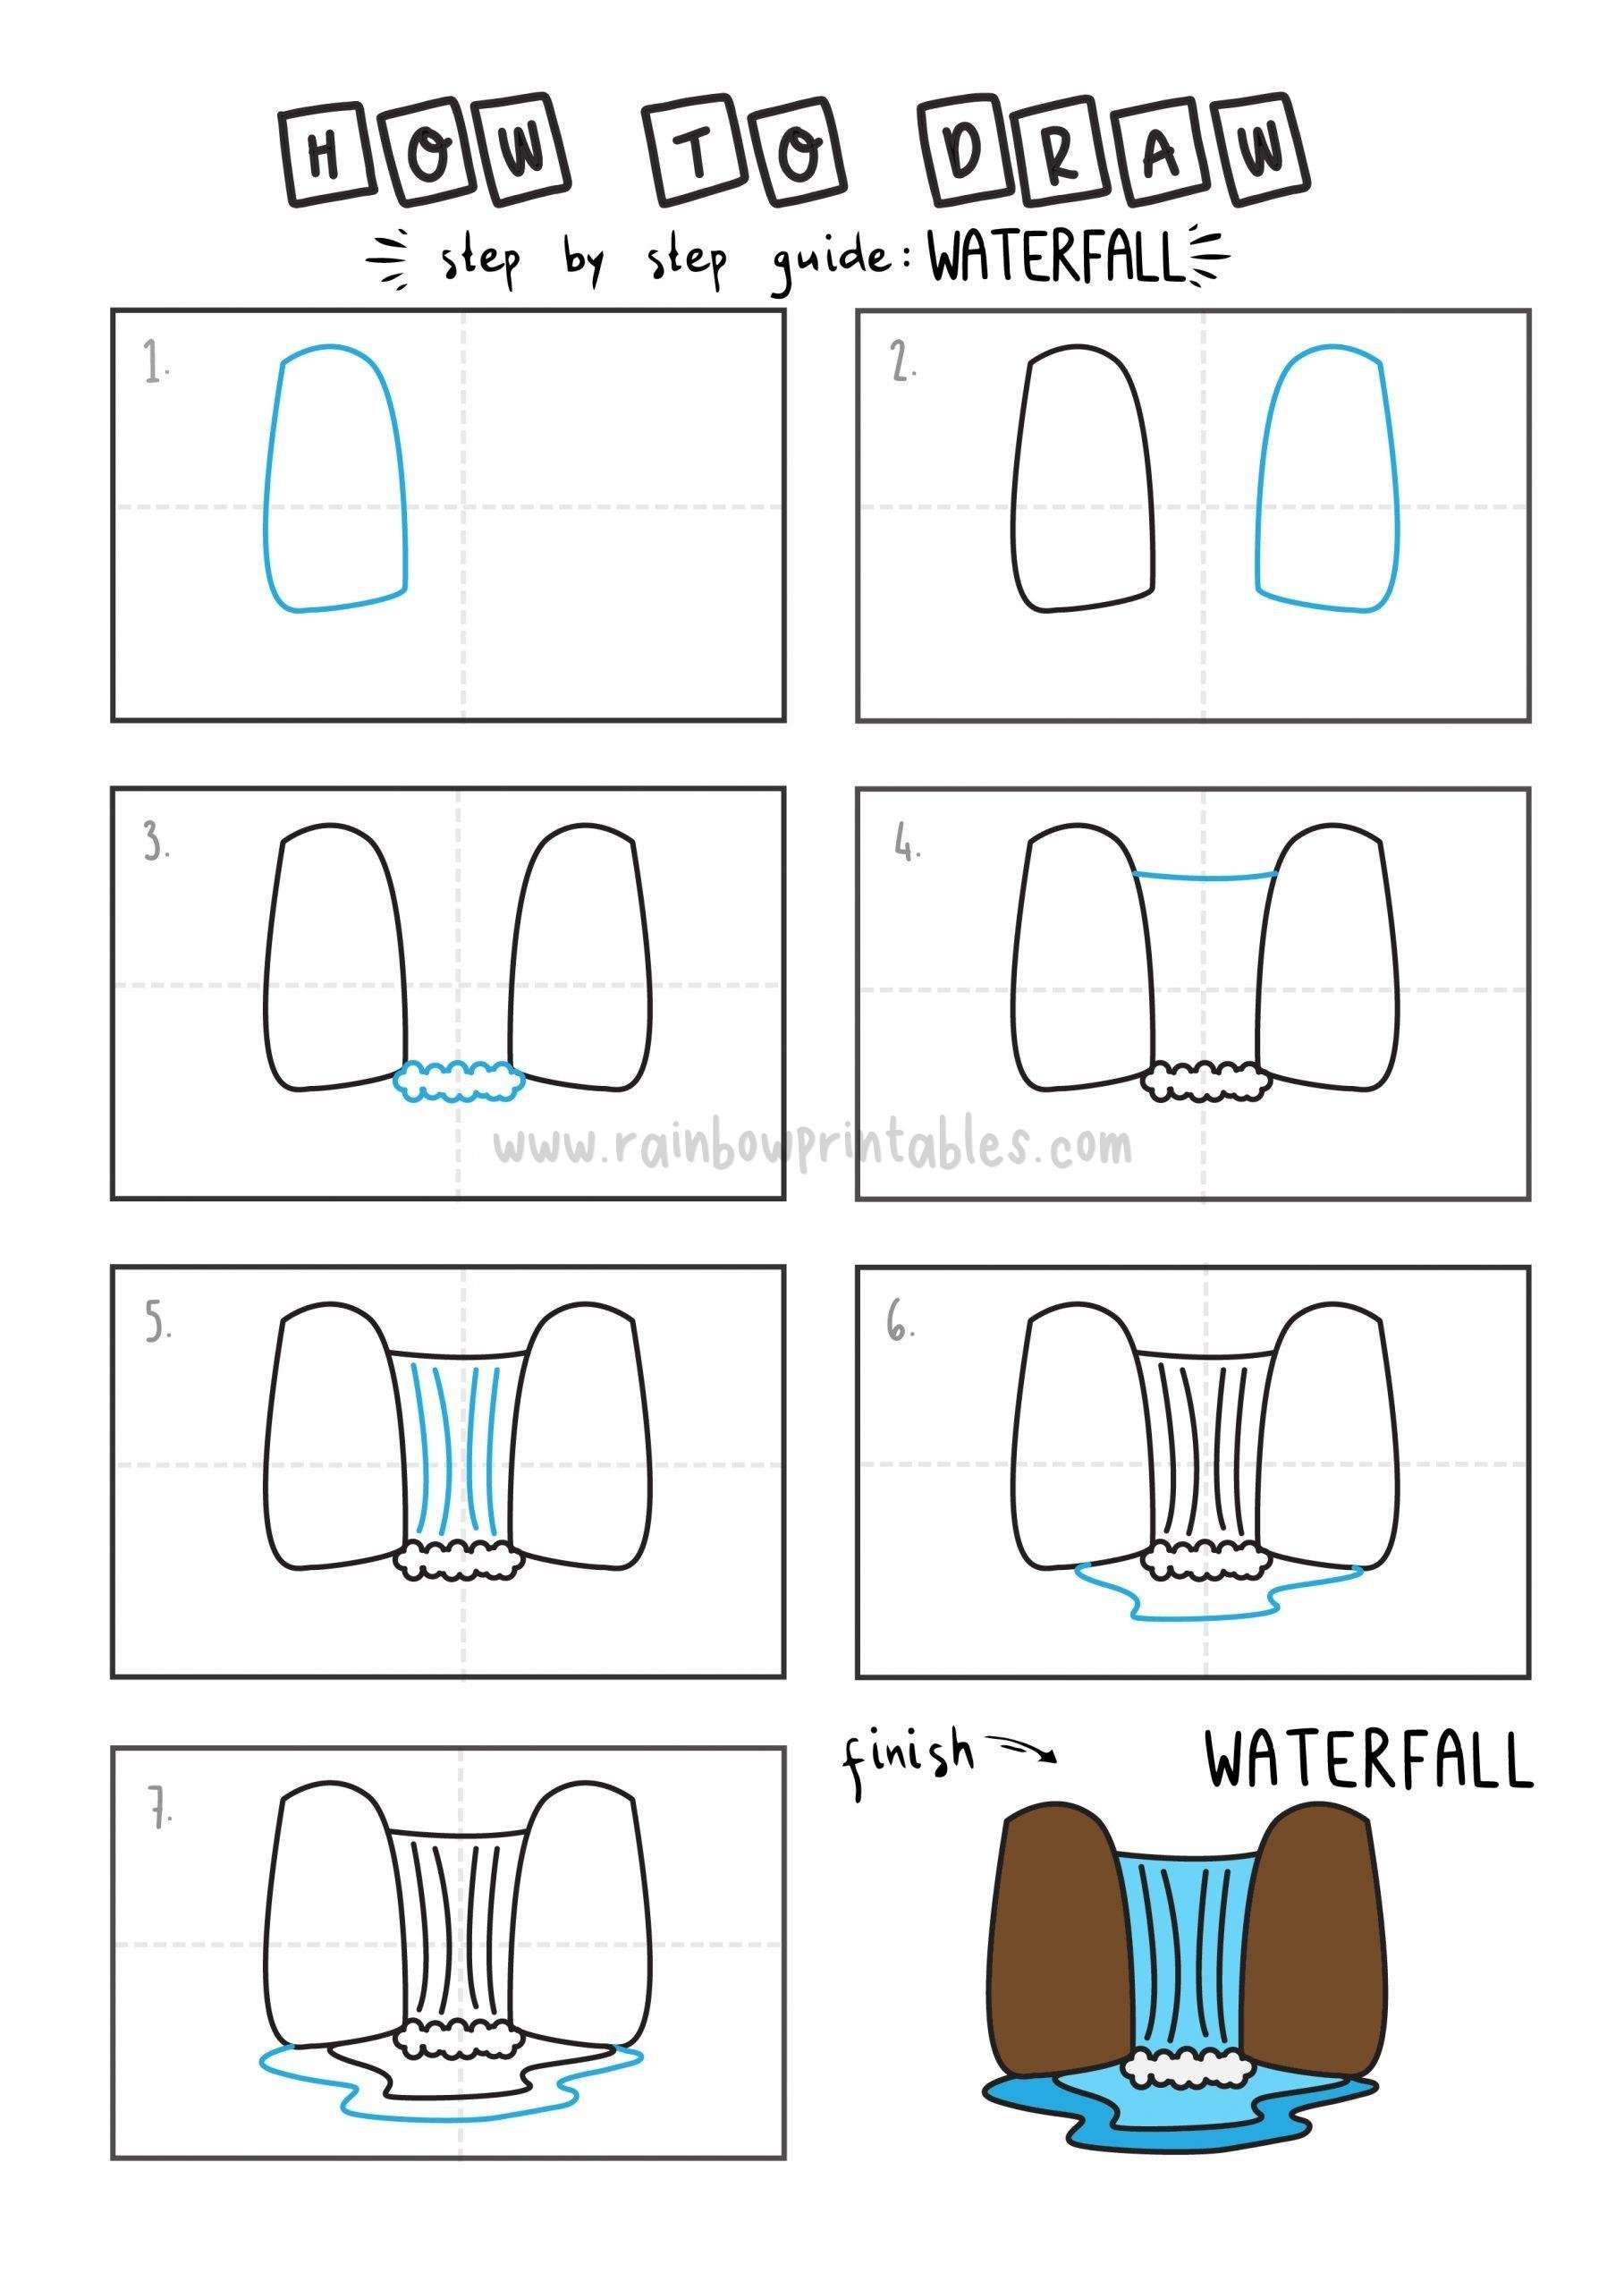 How To Draw Tutorials For Kids Waterfall Step by step for kids easy simple guide Sceneary